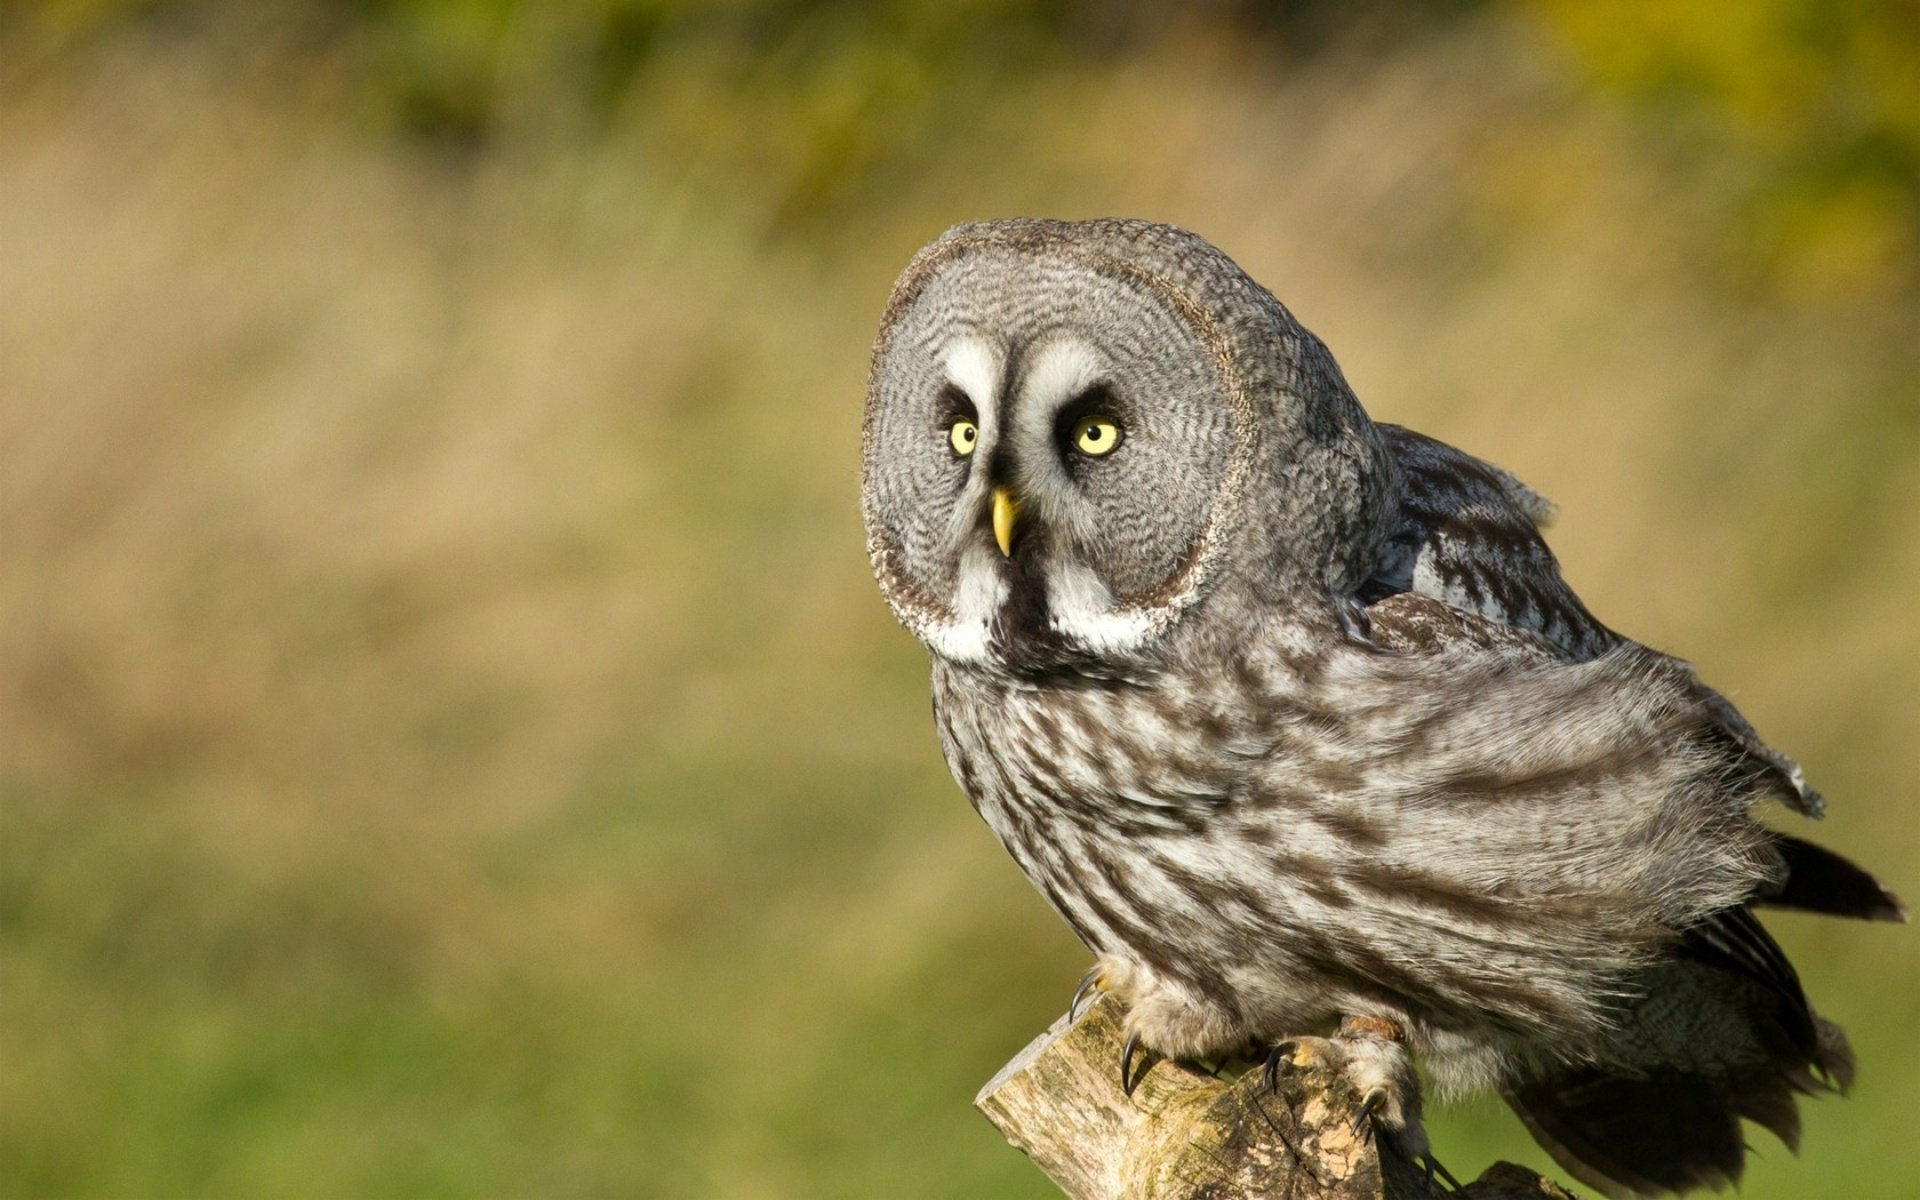 Download hd 1920x1200 Great Grey Owl PC background ID:235133 for free